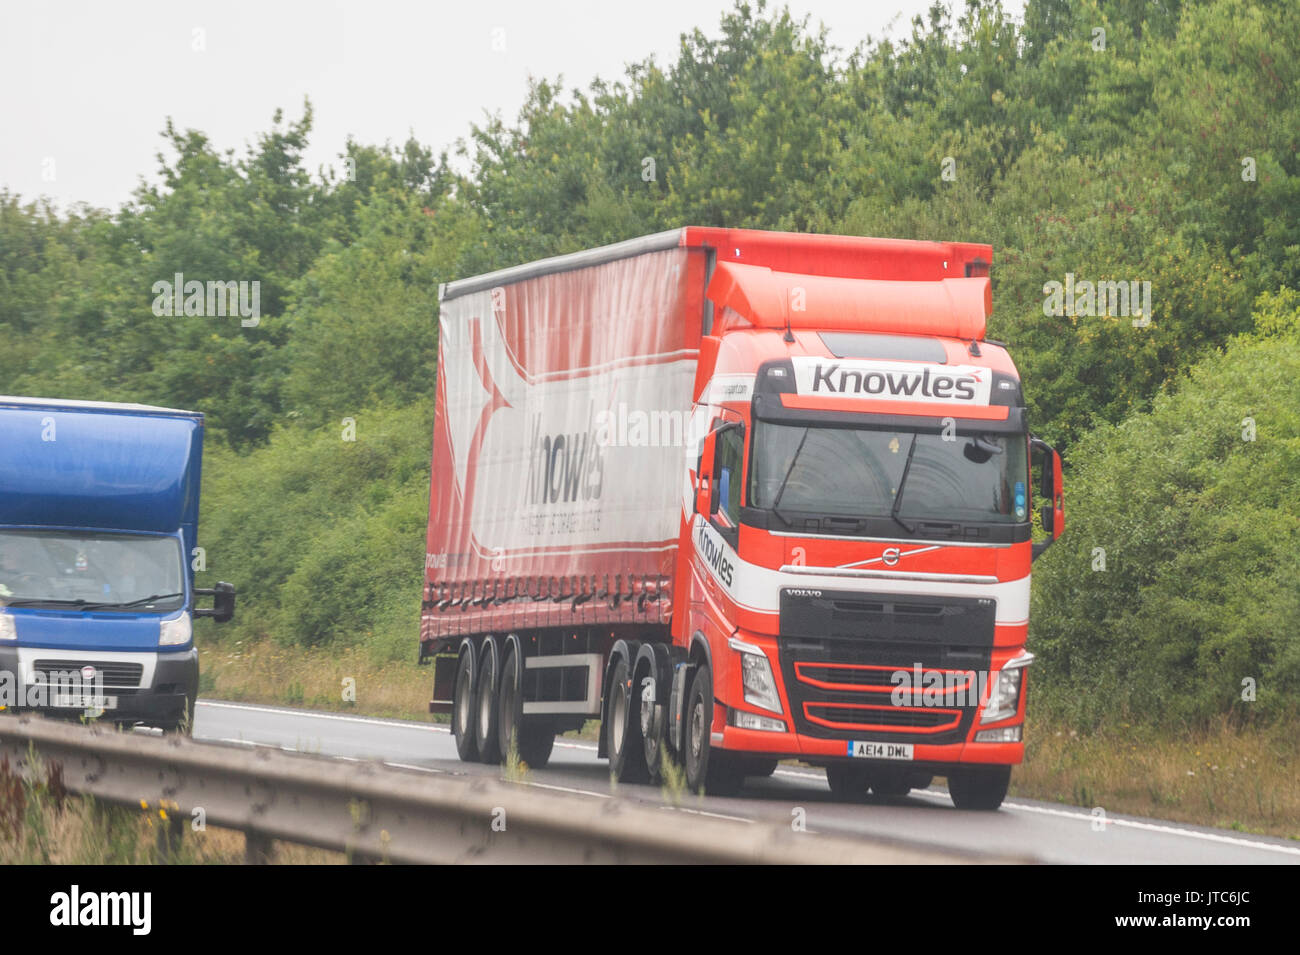 A Volvo HGV Lorry driving on a main road in the Uk - Stock Image